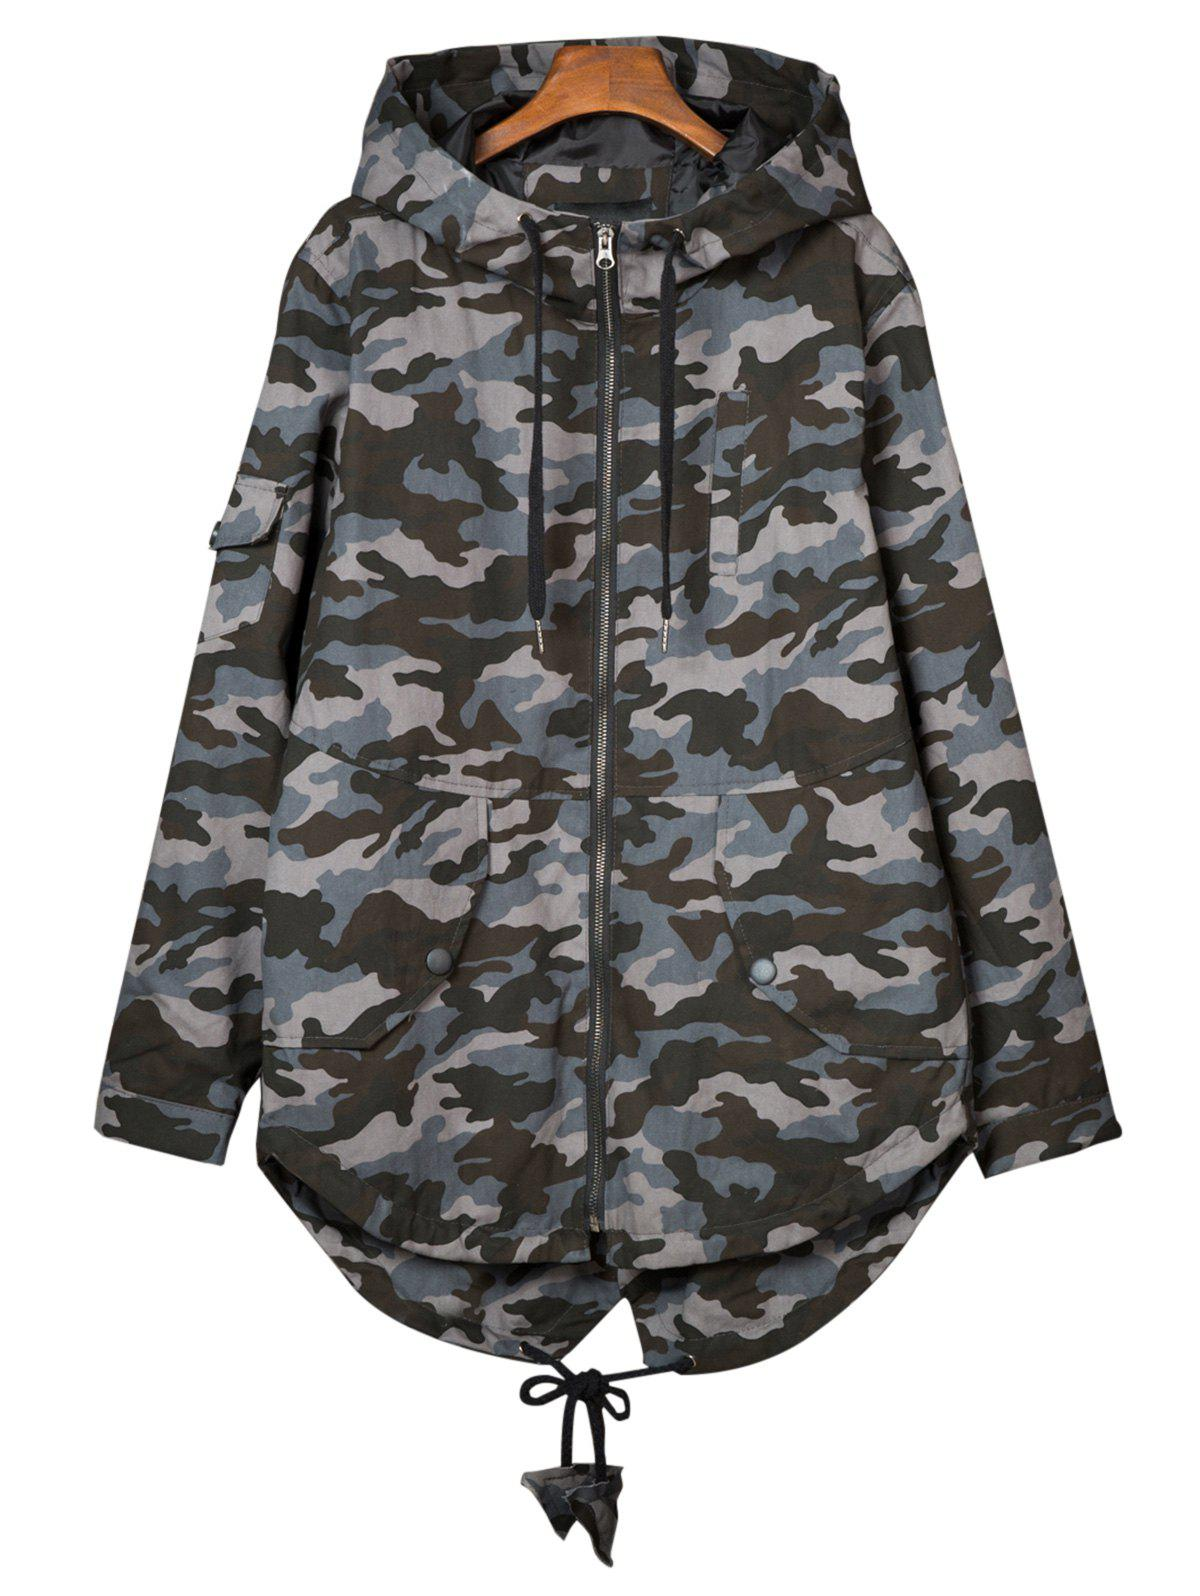 Hooded Camouflage Pockets Lightweight Coat plus size flap pockets hooded camouflage coat